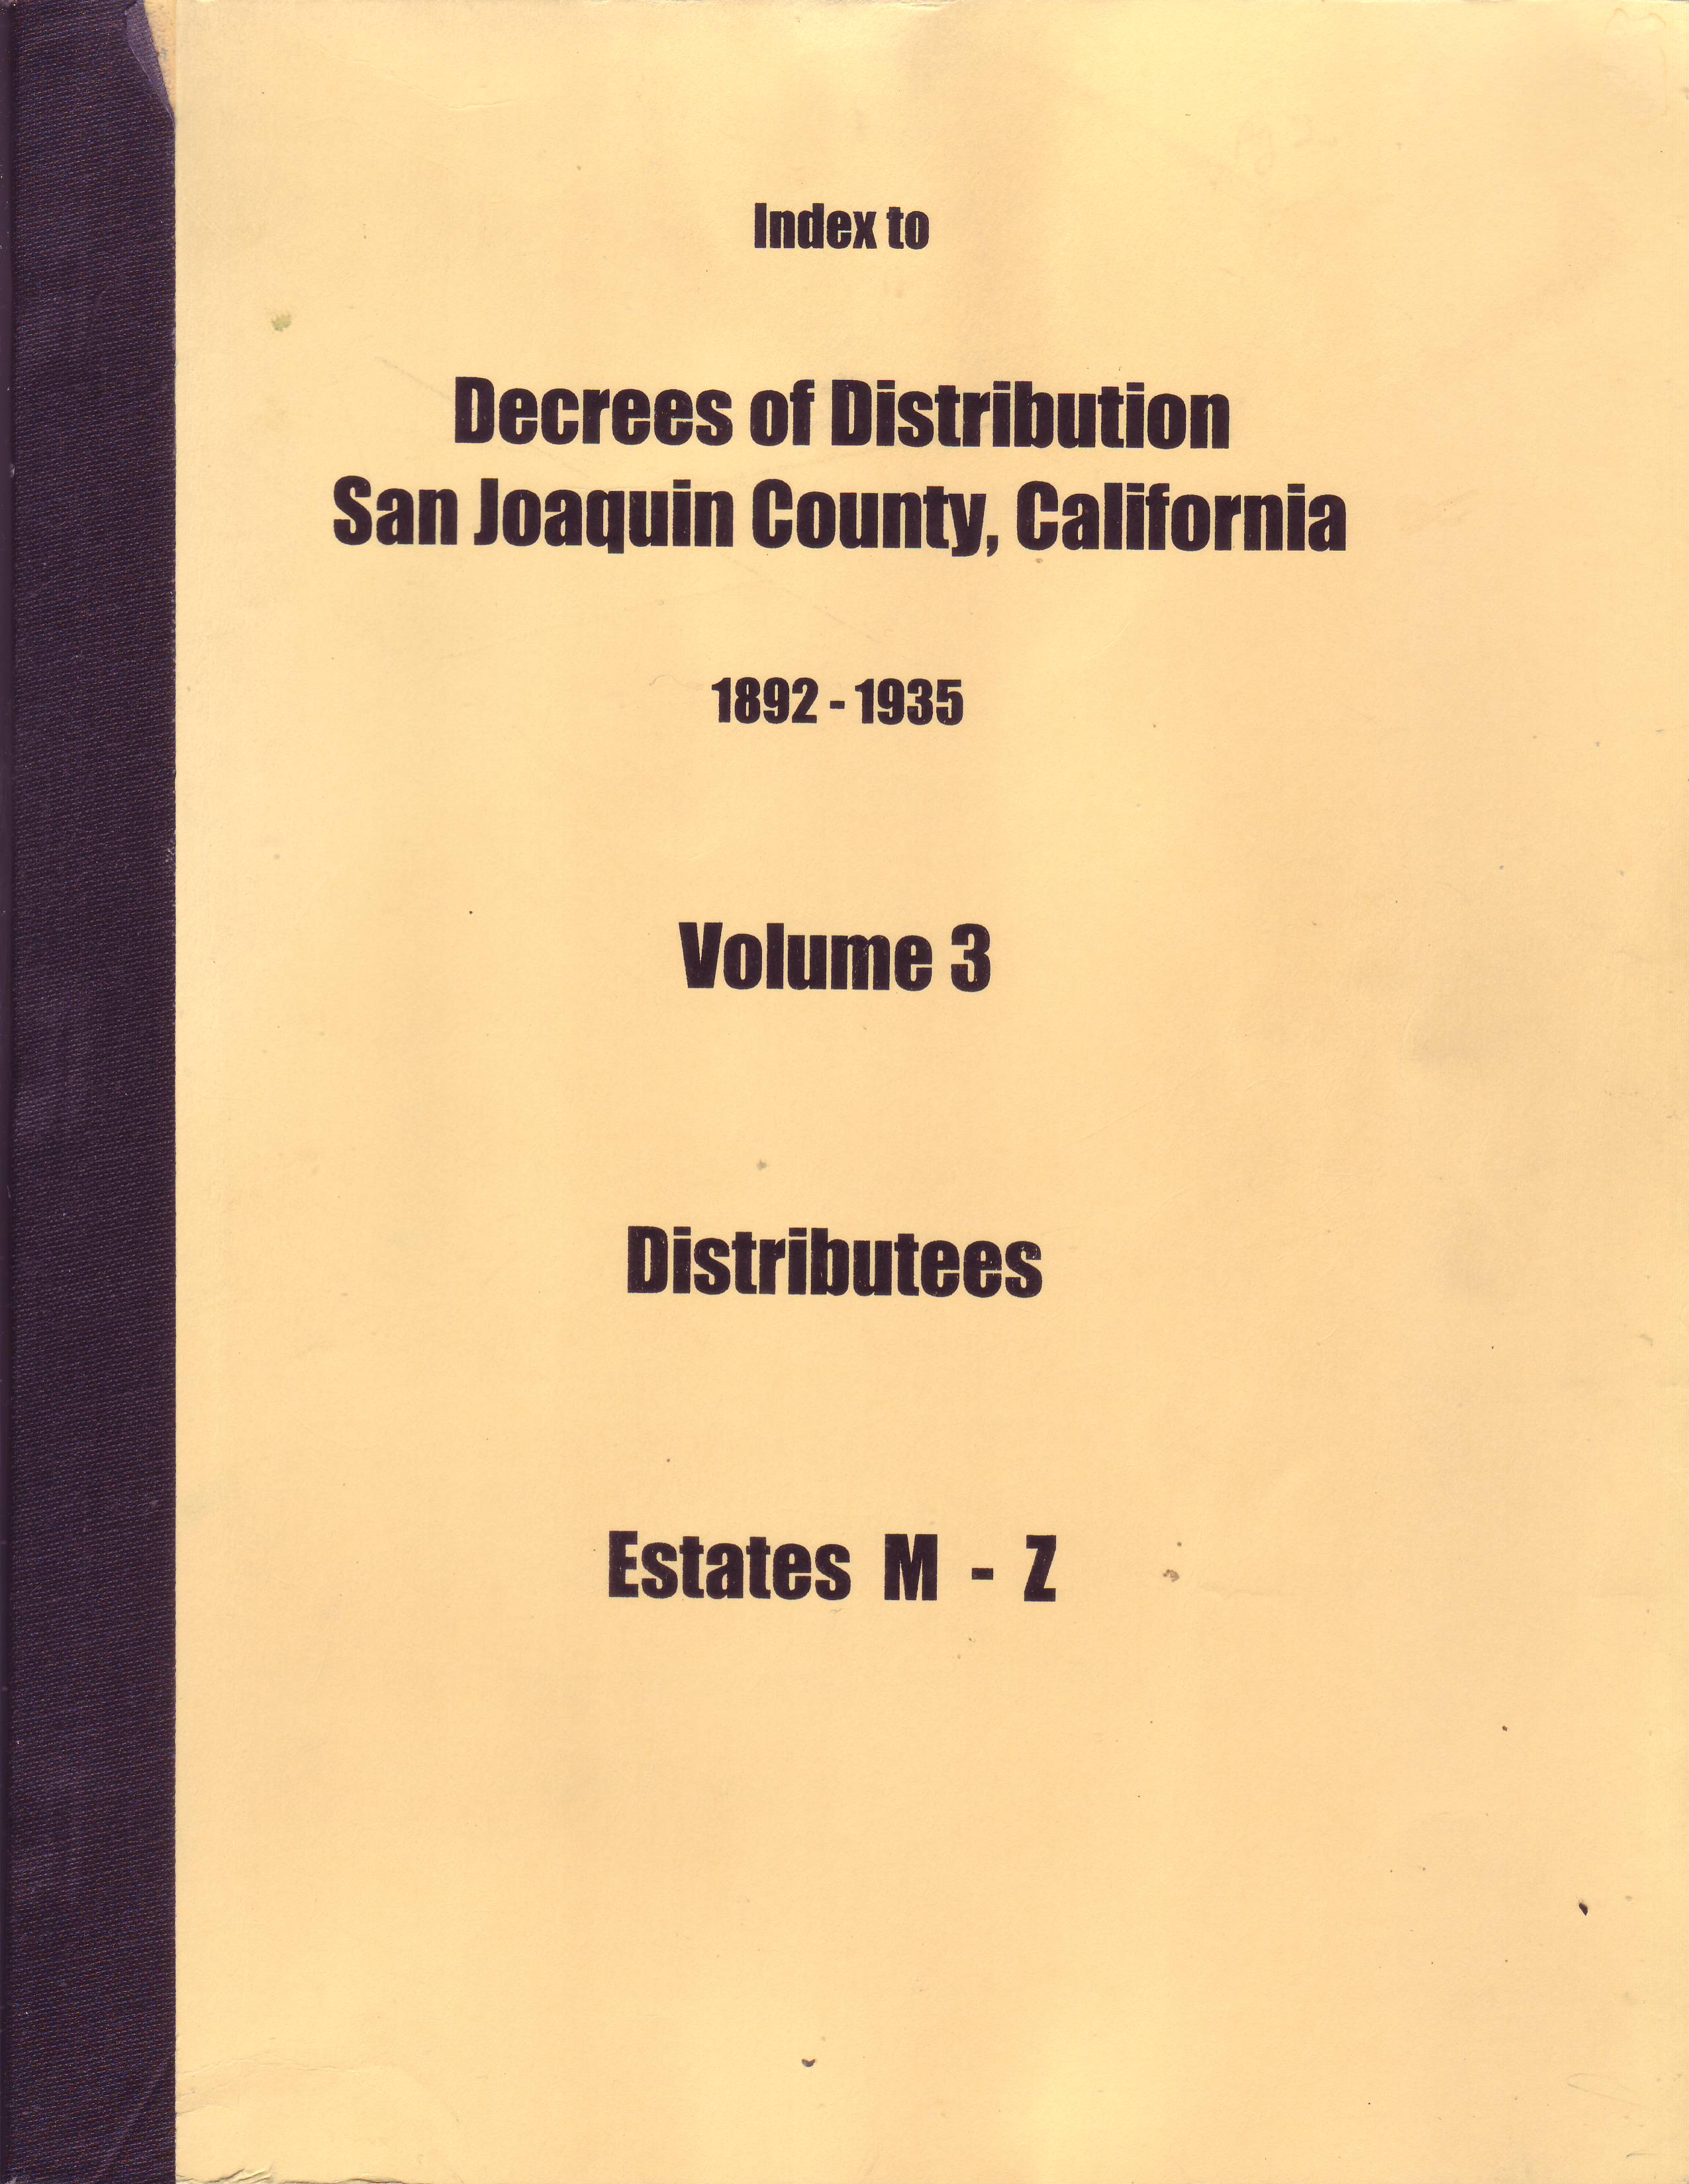 Index to Decrees of Distribution, San Joaquin County, Cailfornia, 1892–1935, Volume 3, Distributees,